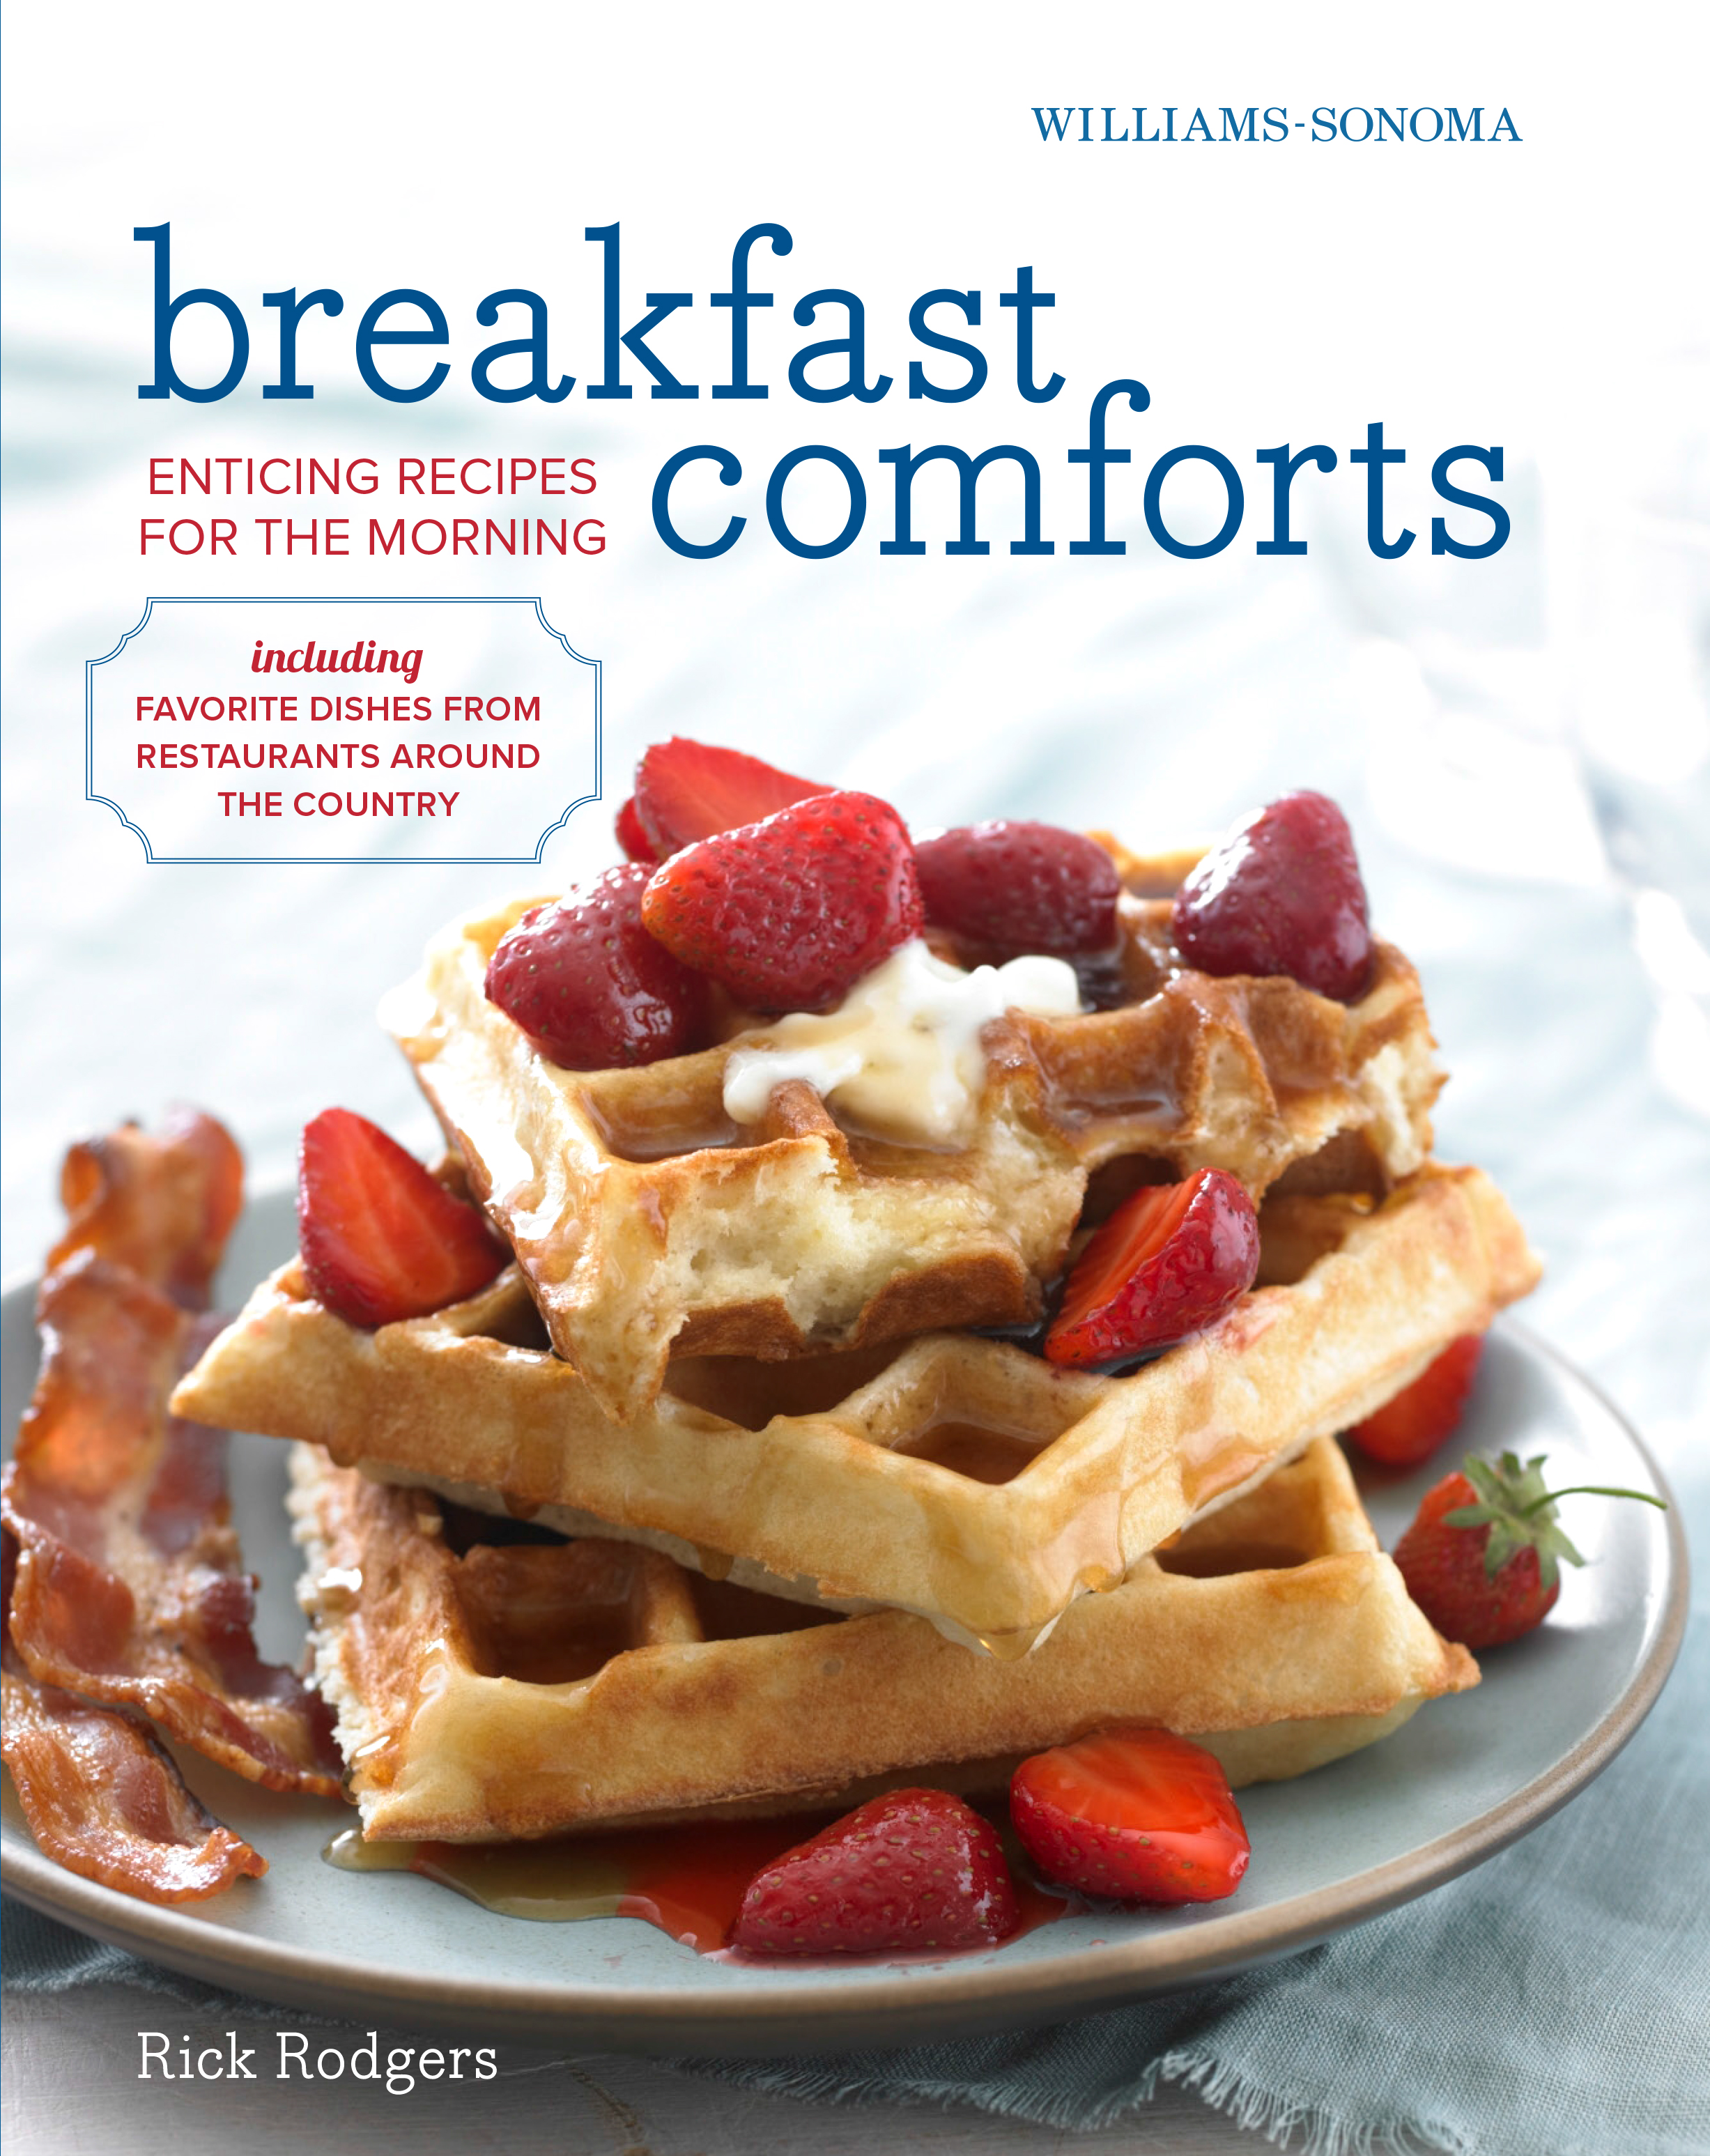 Breakfast-comforts-rev-(williams-sonoma)-9781616286019_hr